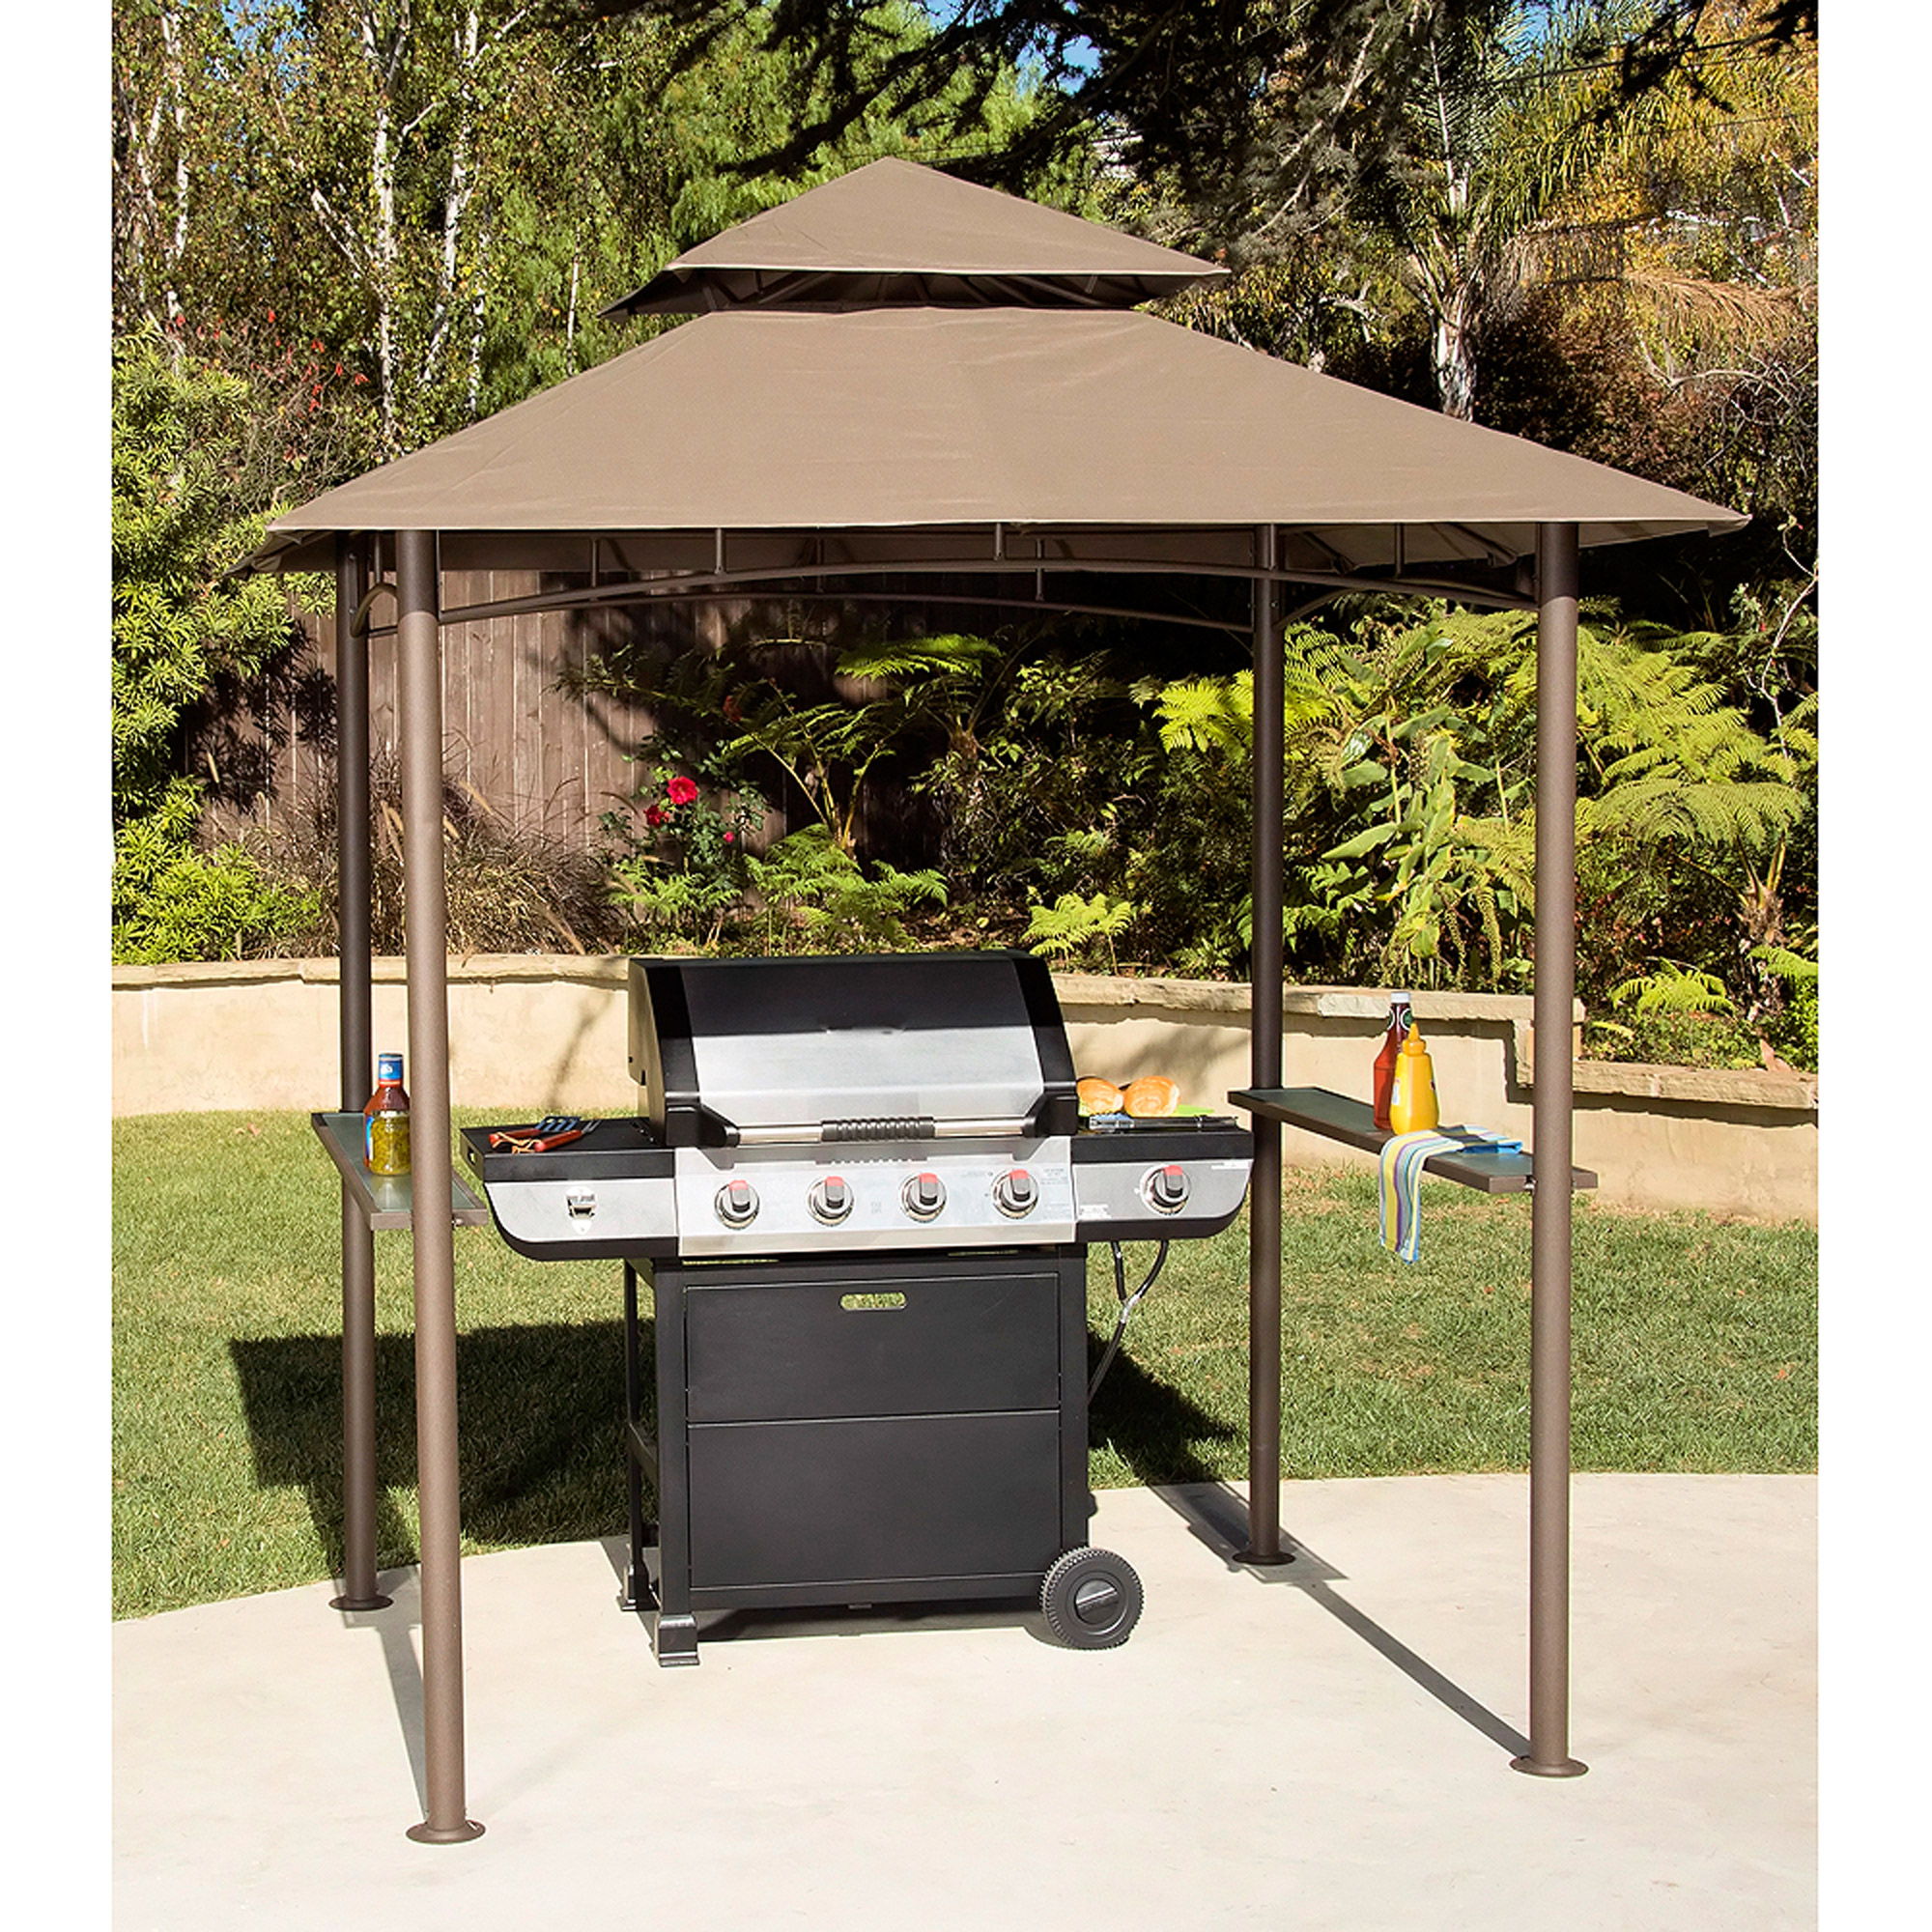 patio pavilion bbq portable outdoor luxury set easy awning party tent wedding for of gazebo